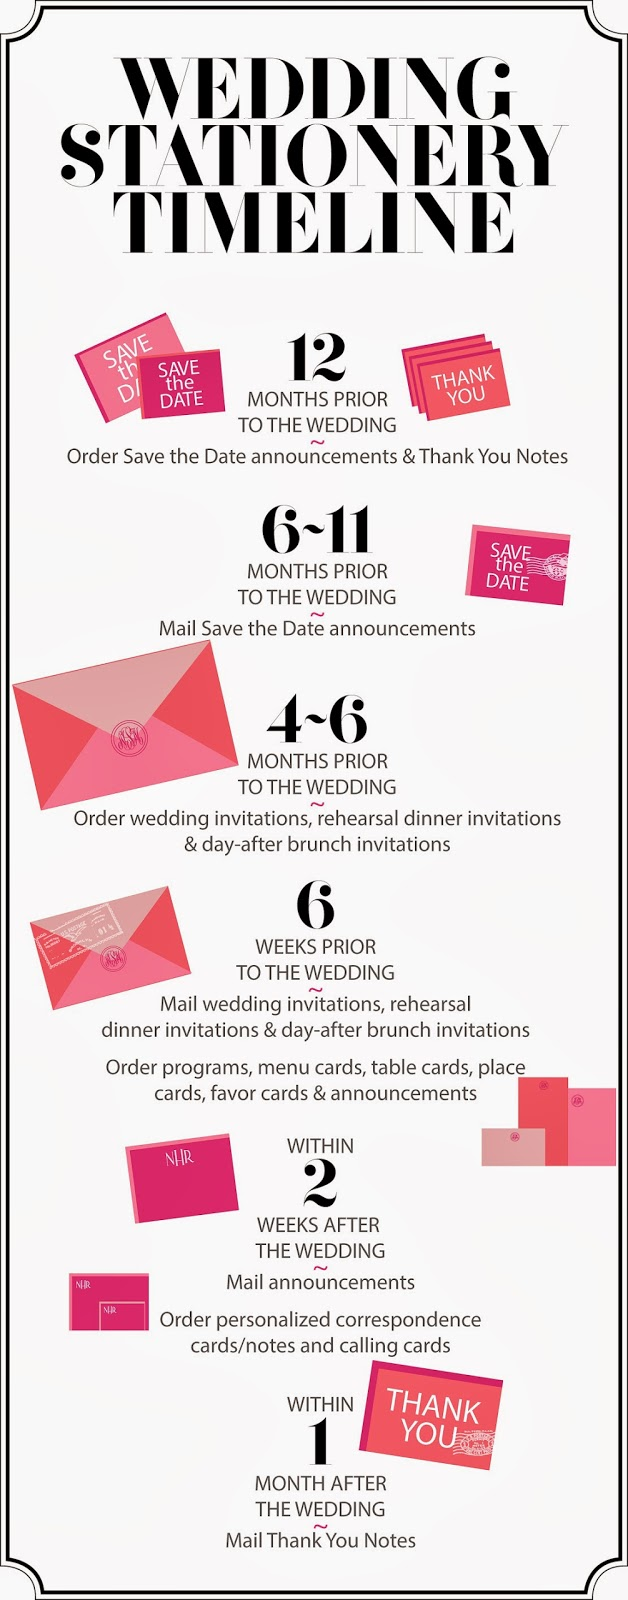 ac672-weddingtimeline-32